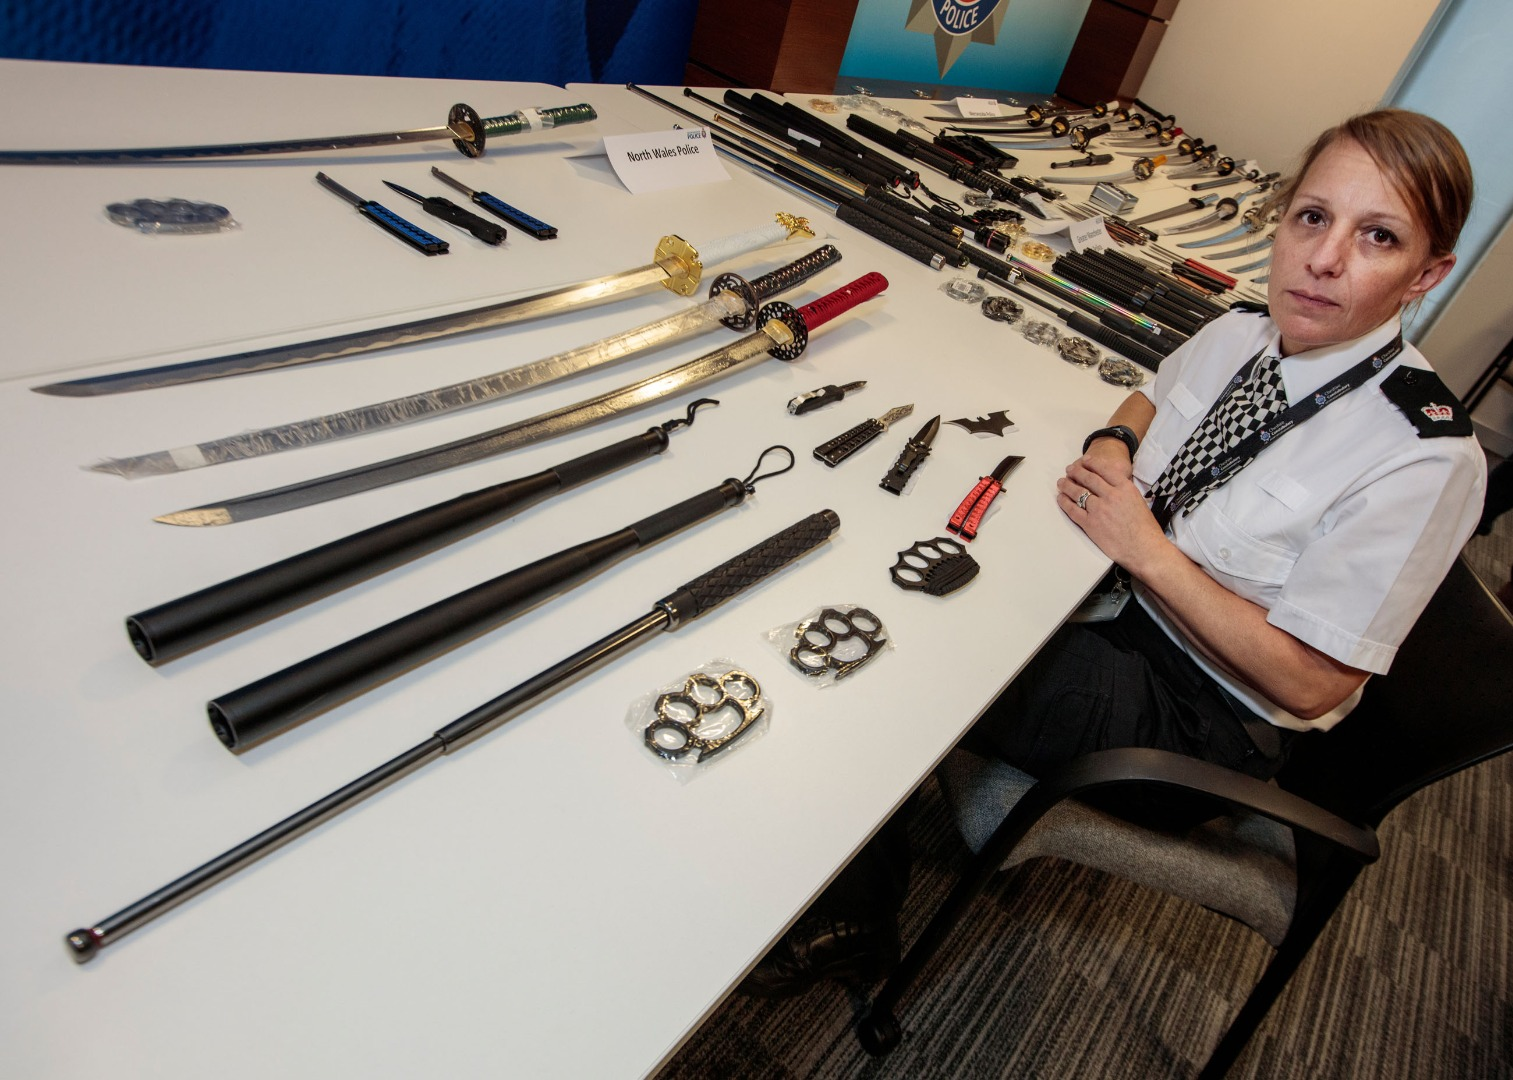 Police across the North West have seized a total of 180 weapons